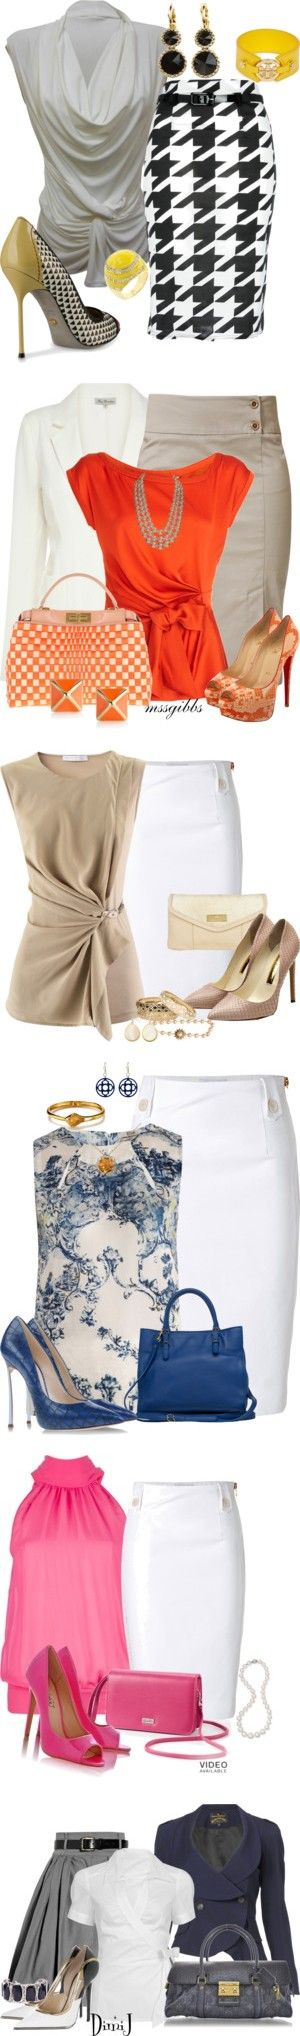 """9-5"" by zuckie1 on Polyvore Great work outfits. I would add a jacket or cardigan to them."